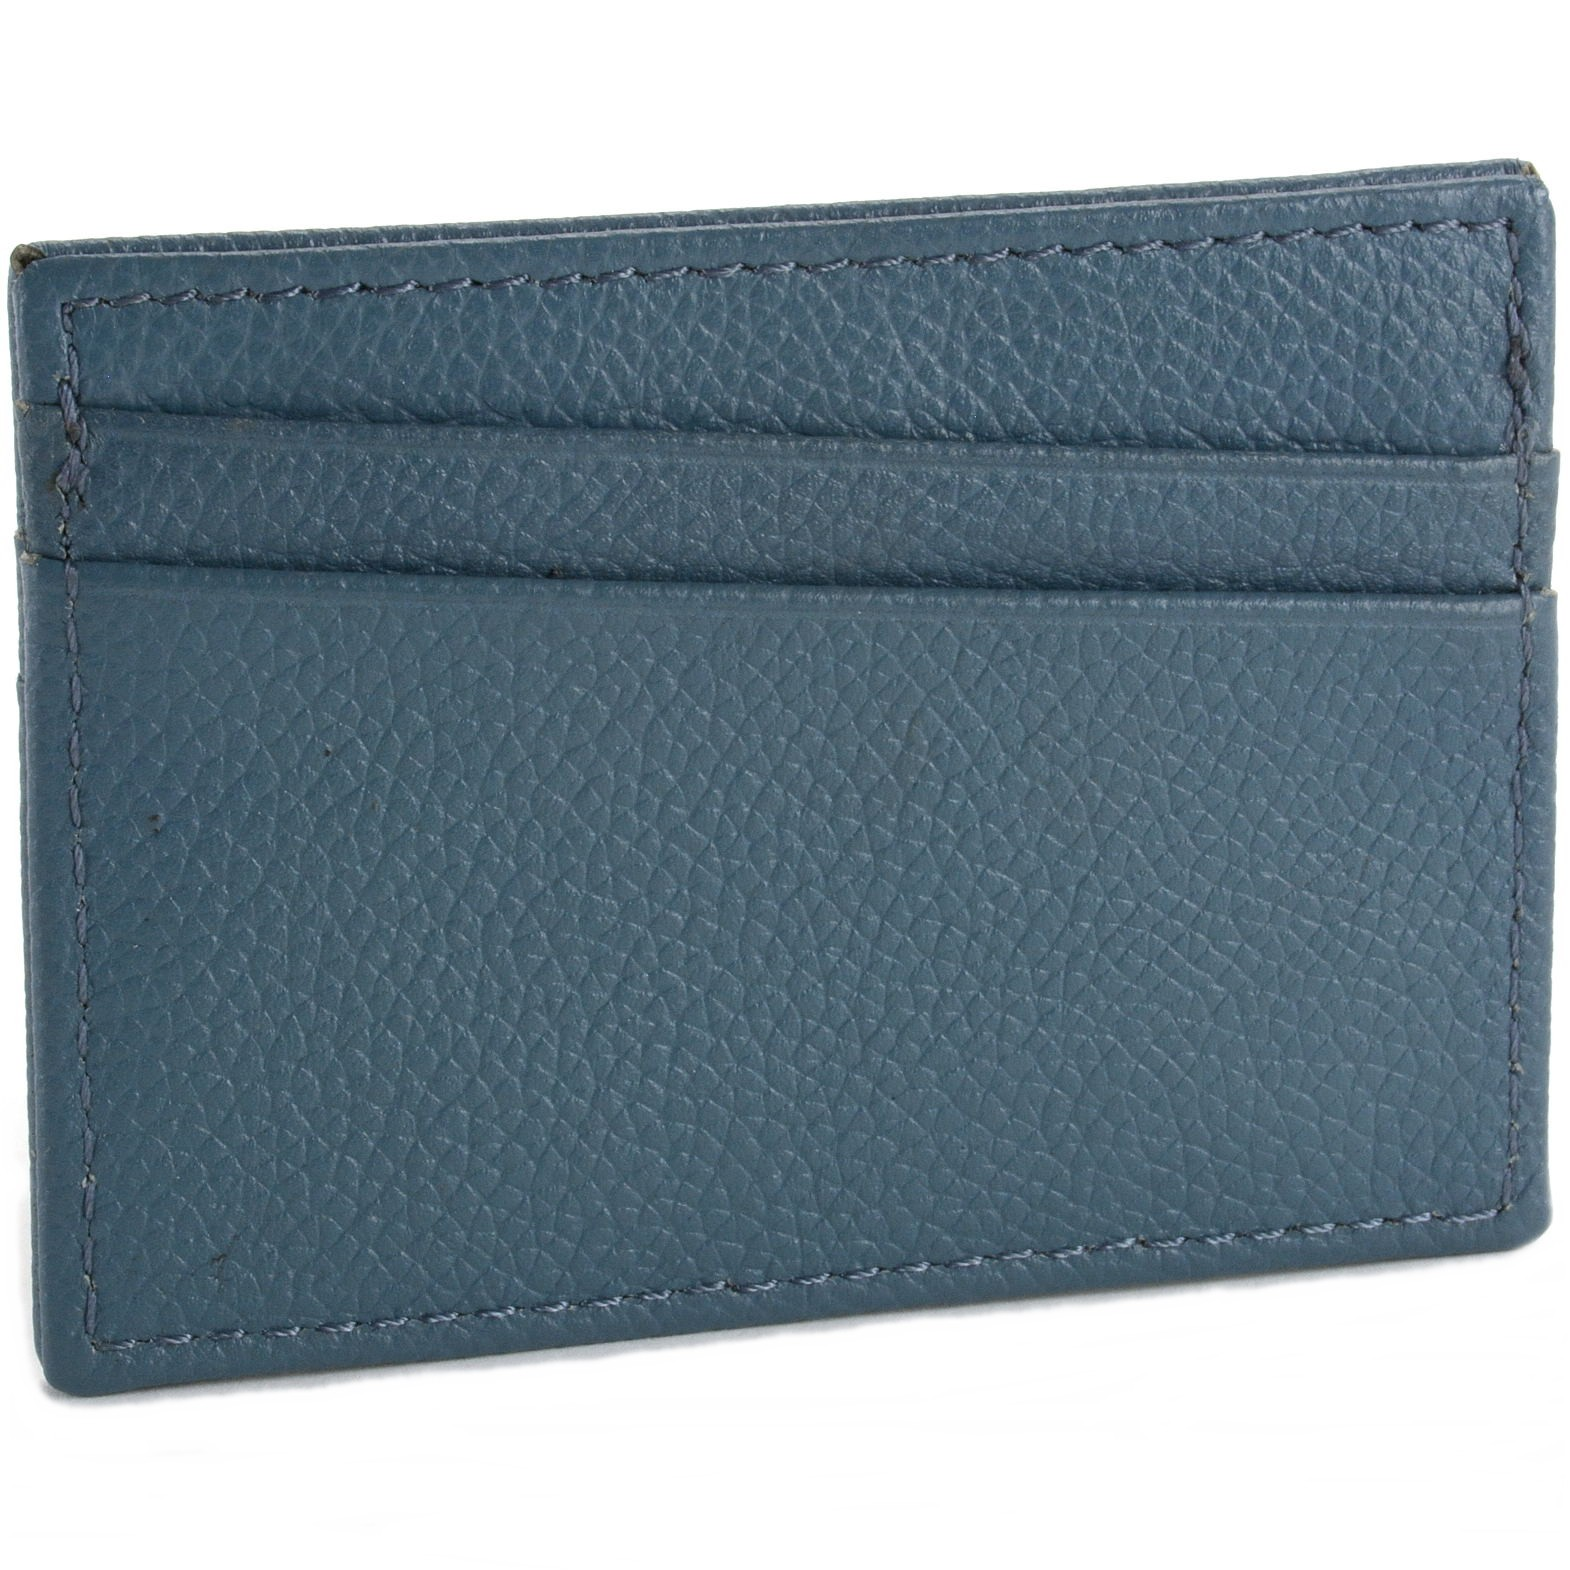 Alpine-Swiss-Super-Slim-Card-Case-Genuine-Leather-ID-Holder-Front-Pocket-Wallet thumbnail 15